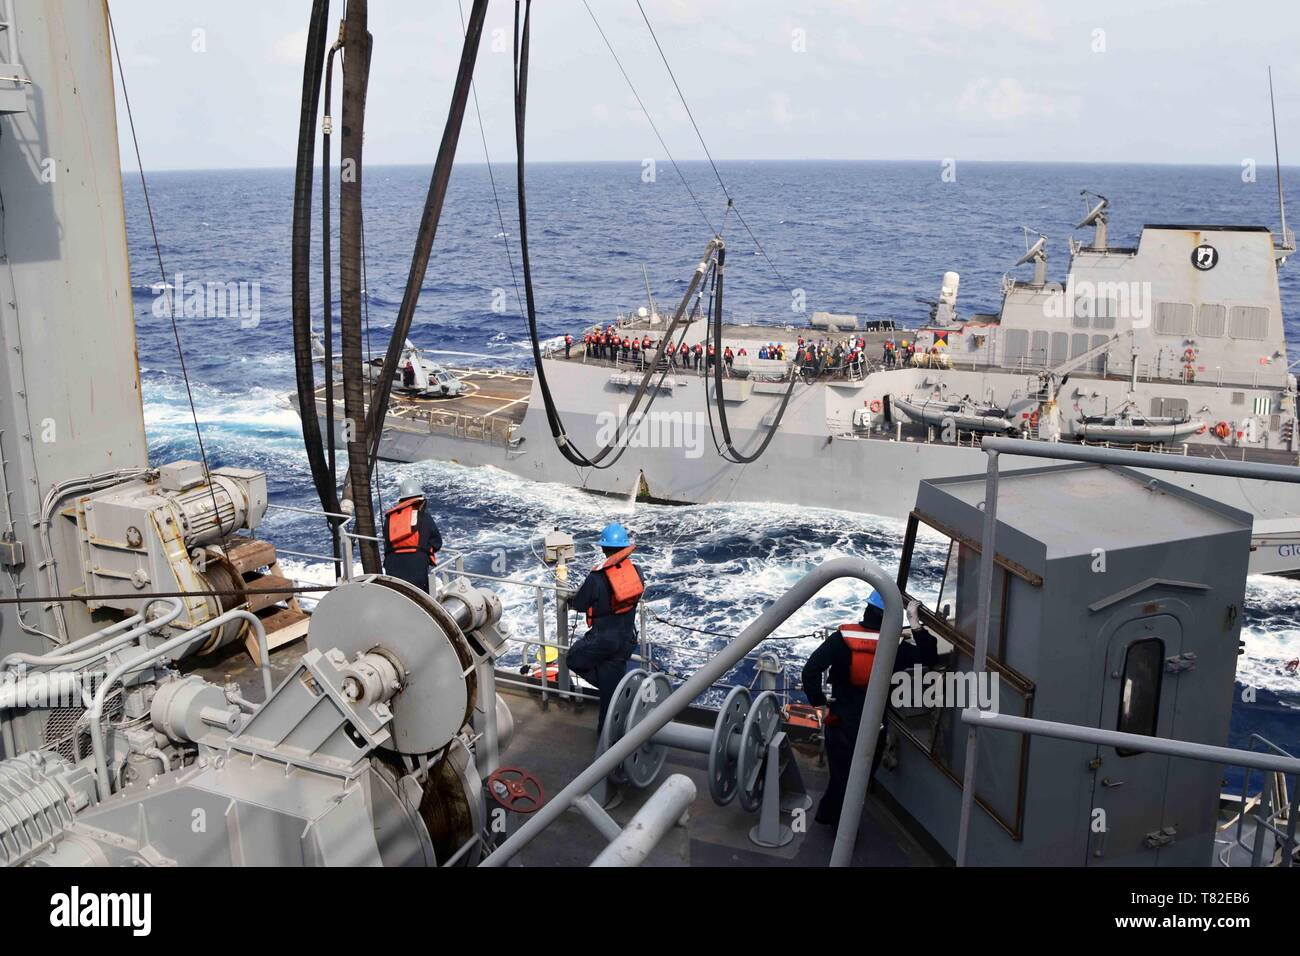 190508-N-WF604-204 SOUTH CHINA SEA (May 8, 2019) -- Civilian mariners onboard the Lewis and Clark-class dry cargo and ammunition ship USNS Richard E. Byrd (T-AKE 4) observe fuel transfer during a replenishment-at-sea with guided missile destroyer USS William P. Lawrence (DDG 110) on May 8. Military Sealift Command fleet replenishment dry cargo and ammunition ships provide support to customers via underway and vertical replenishments. (Photo by David Wyscaver) - Stock Image